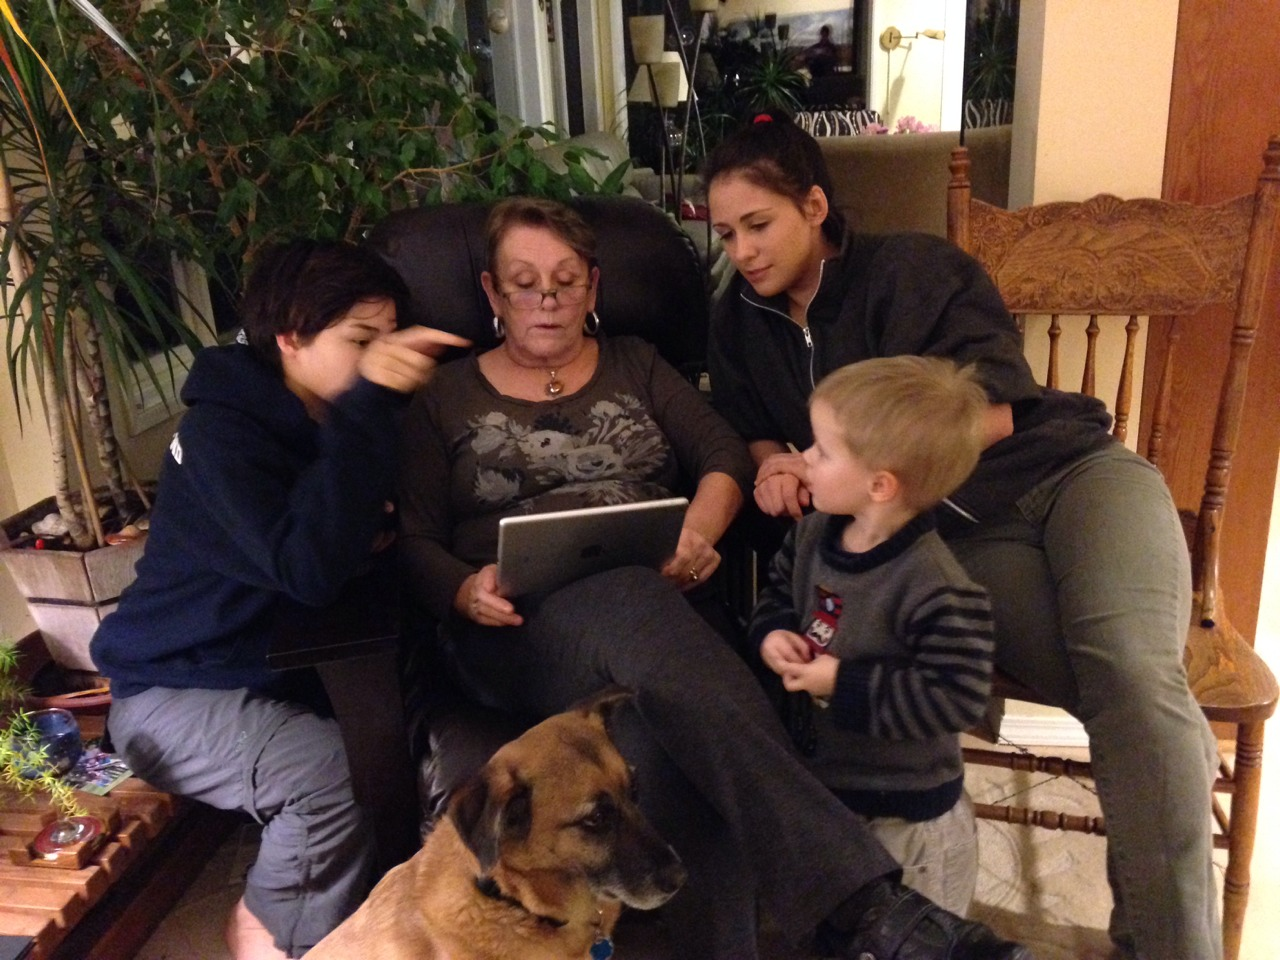 Out b&b has started to feel a bit like home. In this photo Oscar is lending his expertise as our host Eva gets a lesson on her iPad from her granddaughters. We had a wonderful dinner with Eva and Emile tonight but we say goodbye tomorrow and head to our new home.